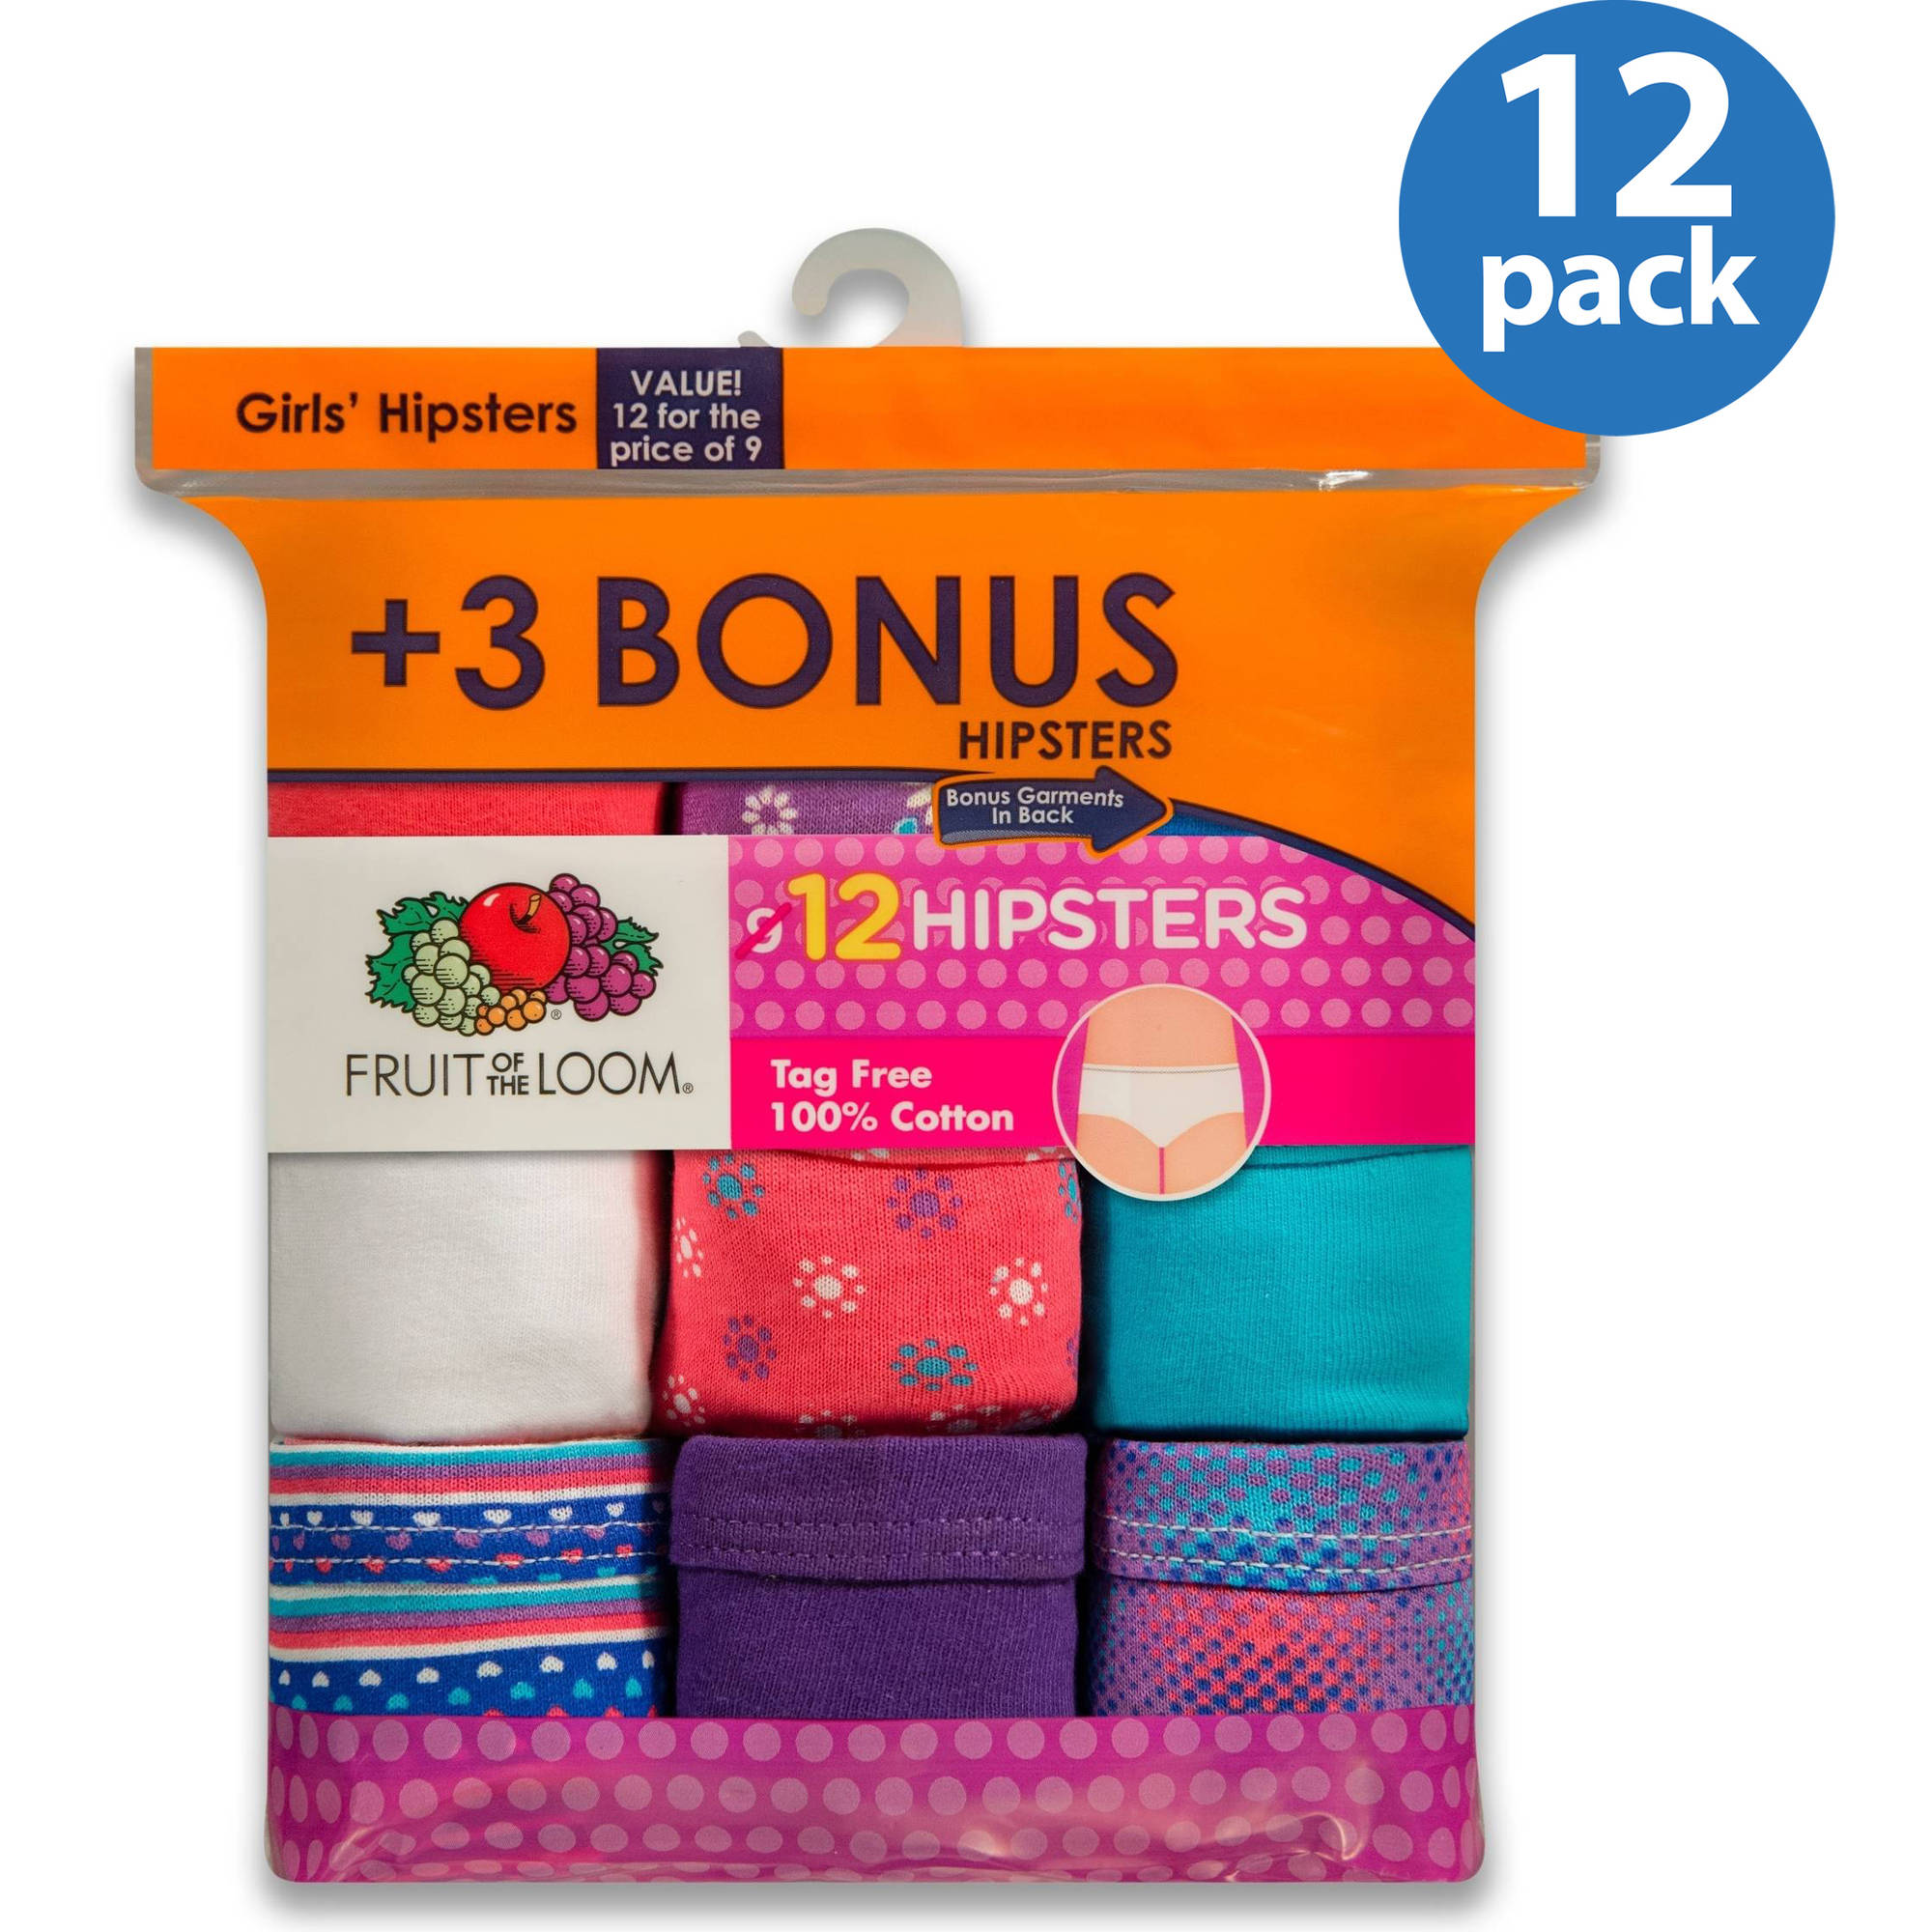 Fruit of the Loom Girls' 100% Cotton Hipster Panties, 9+3 Bonus Pack